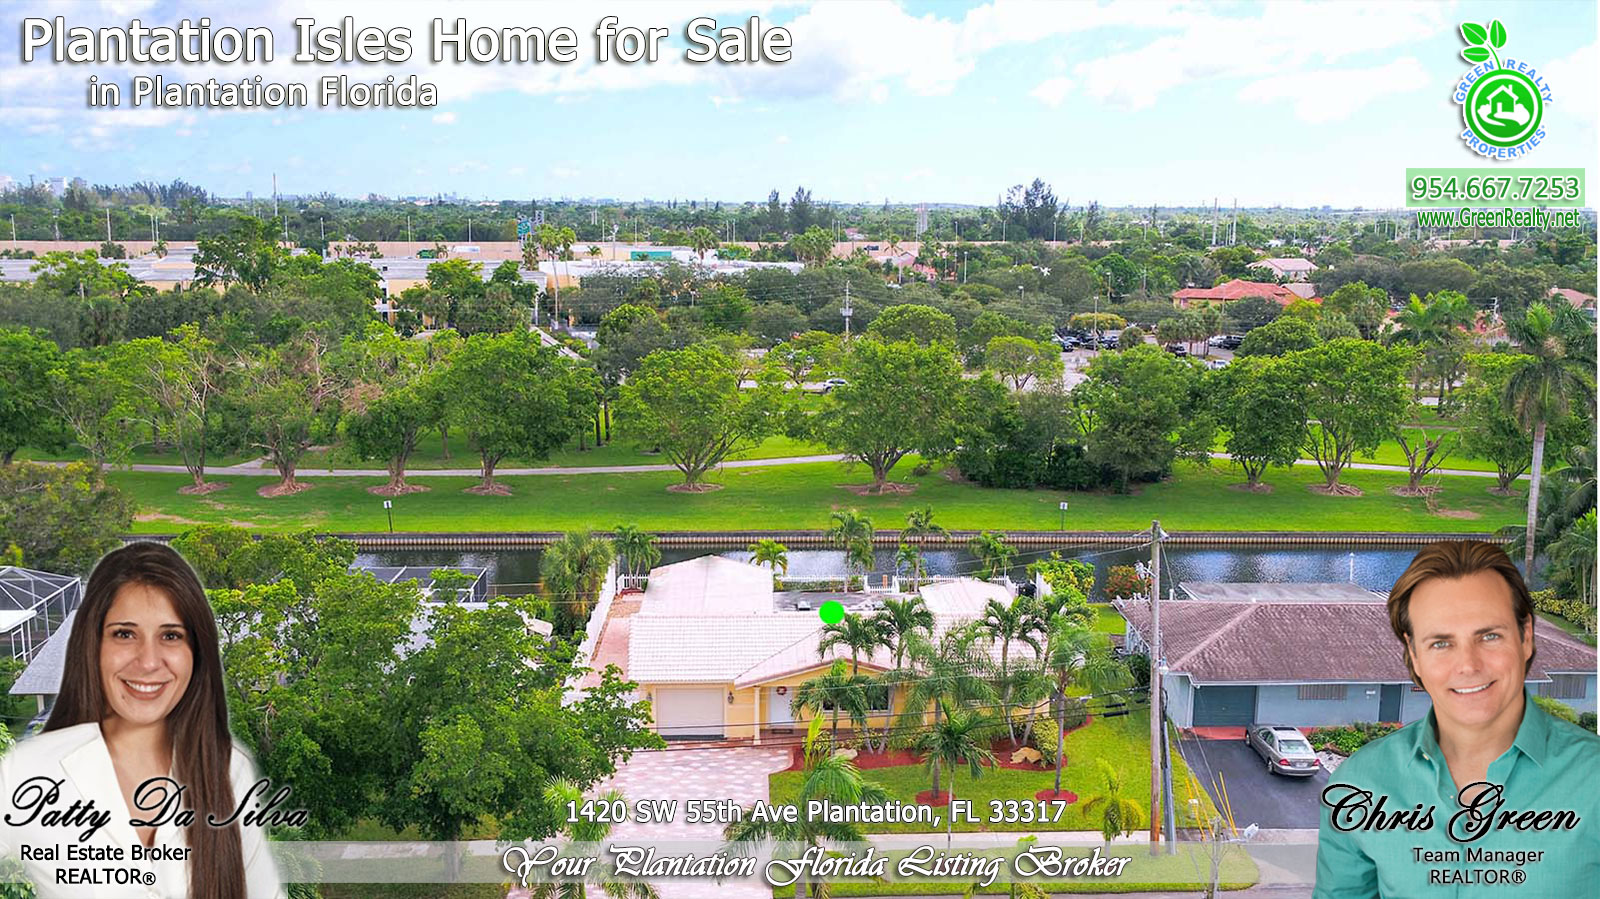 40 Plantation-FL-Homes-For-Sale-best-realtors-in-sourh-florida